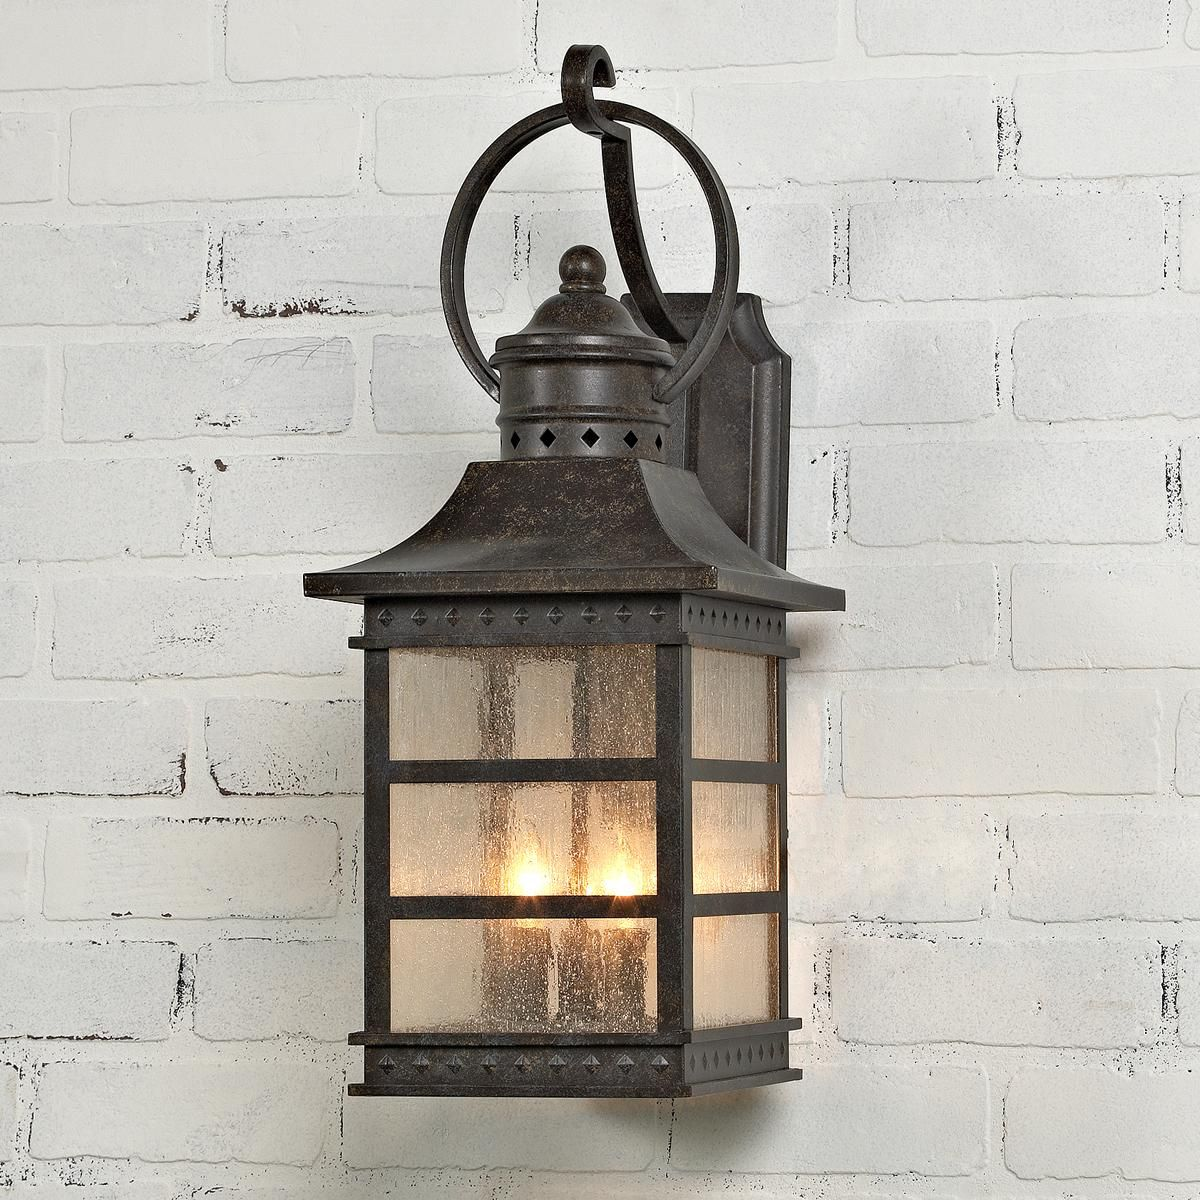 Carriage House Outdoor Light Medium Outdoor Light Fixtures Carriage Lights Exterior Light Fixtures